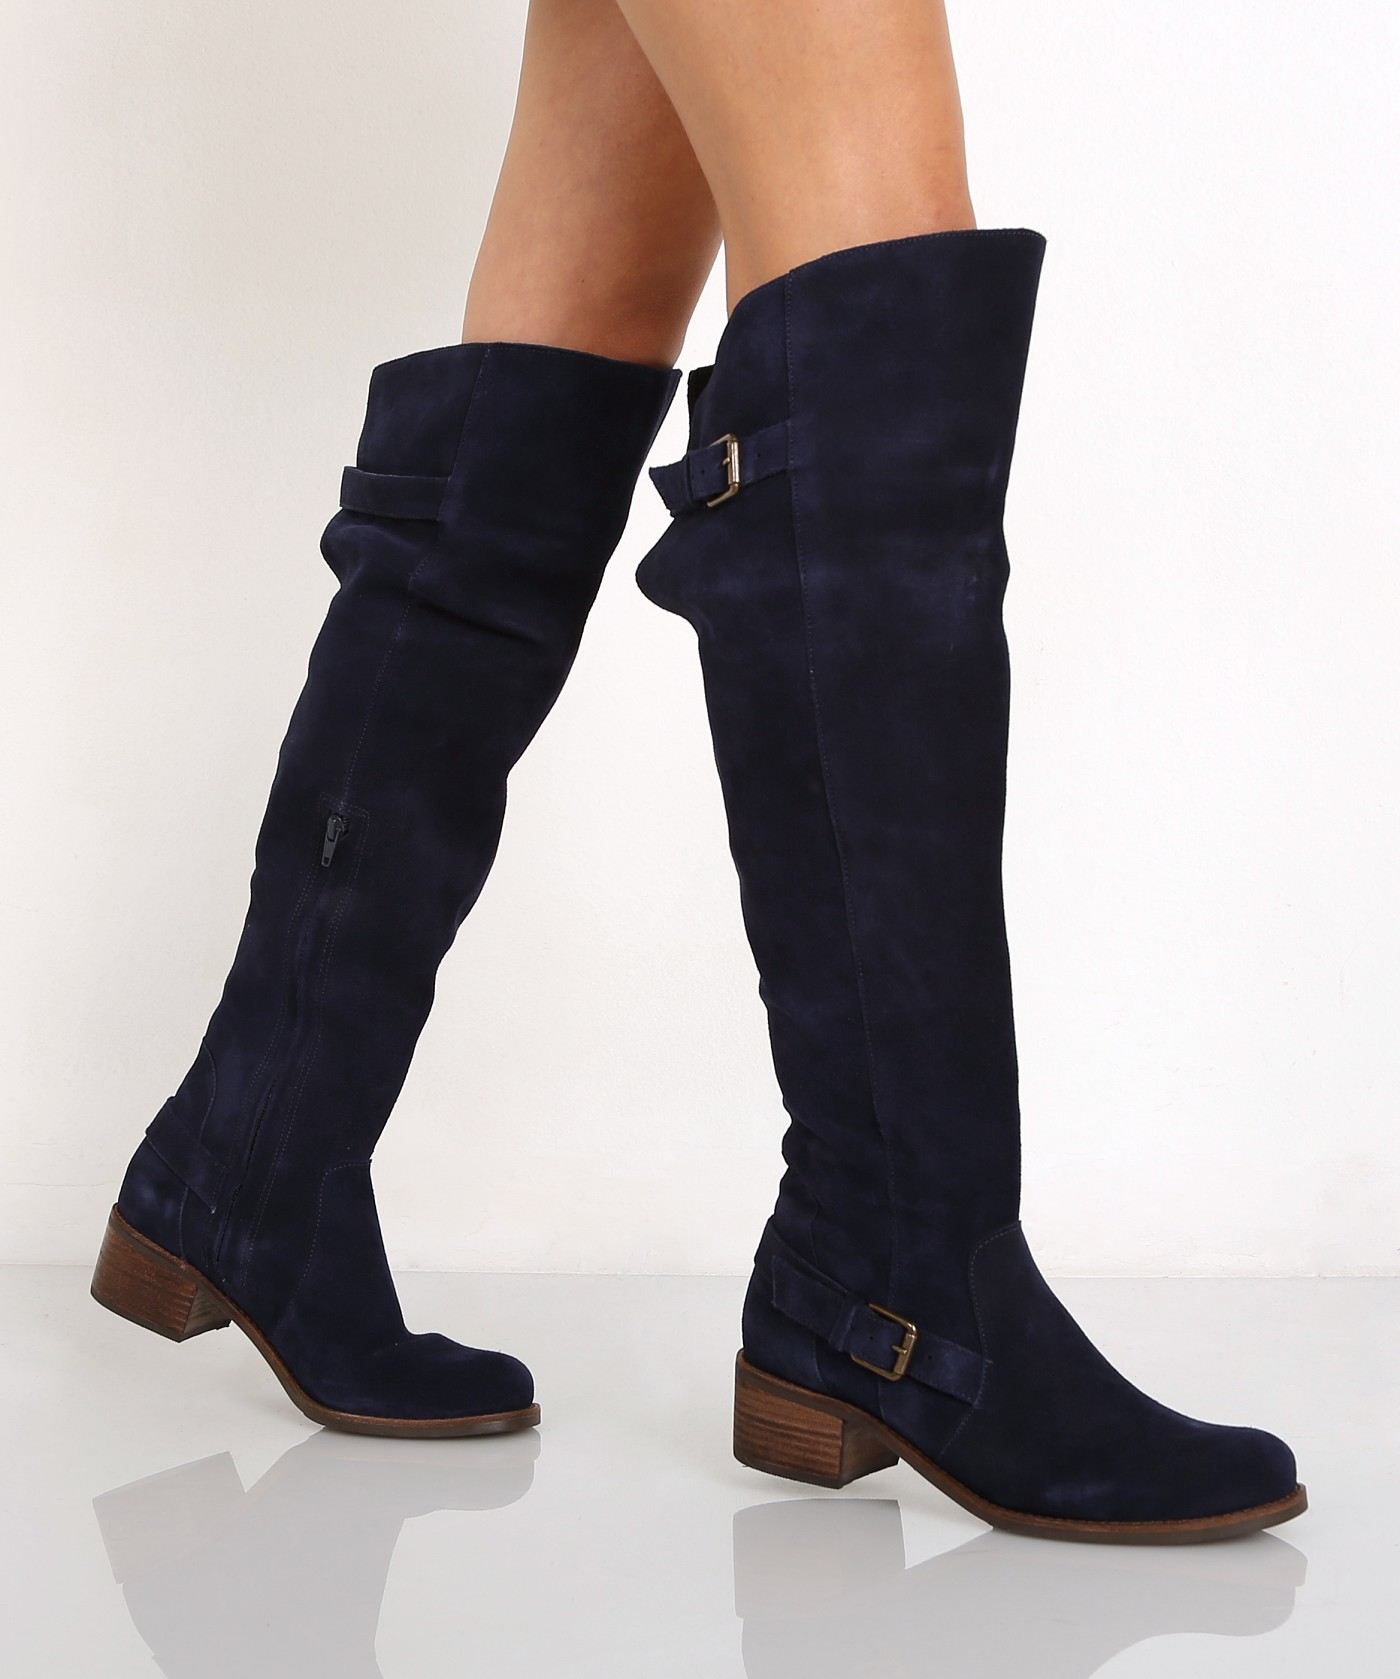 matisse finnley the knee boot blue suede in blue lyst